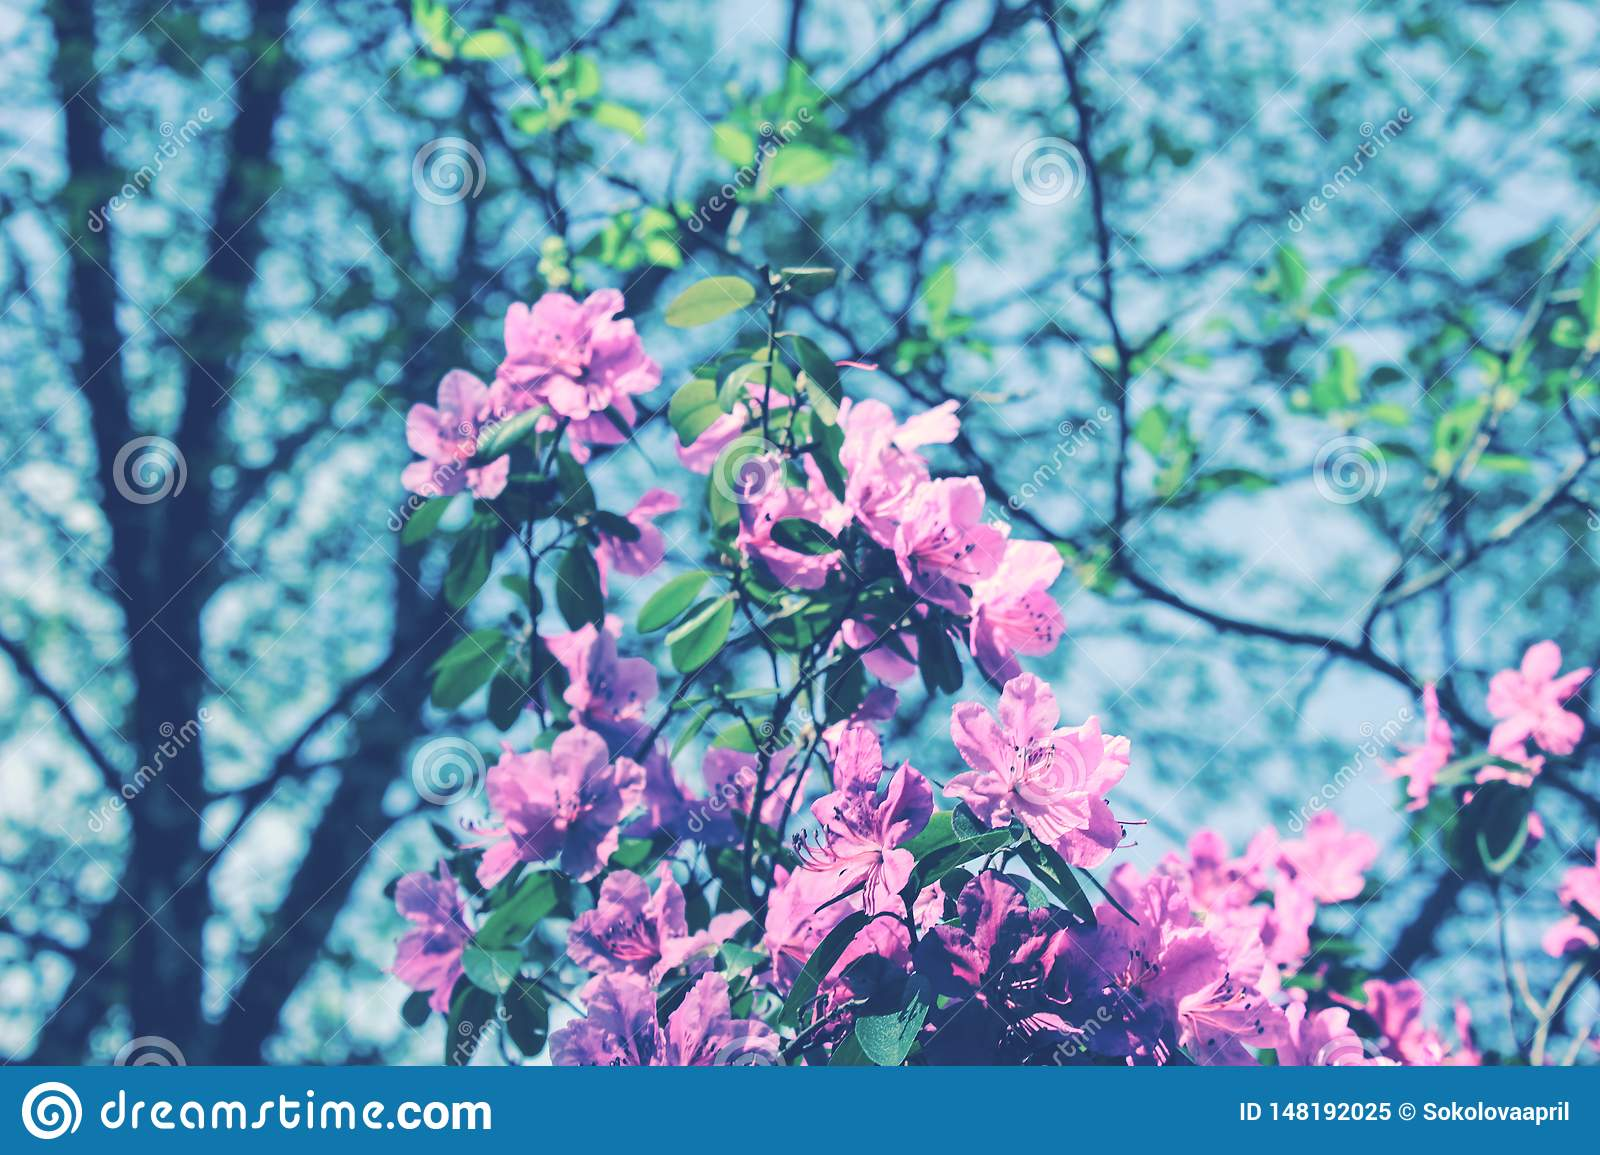 Blooming tree flowers in pink spring season of nature beauty. Spring flower landscape.Floral nature background, free space for tex